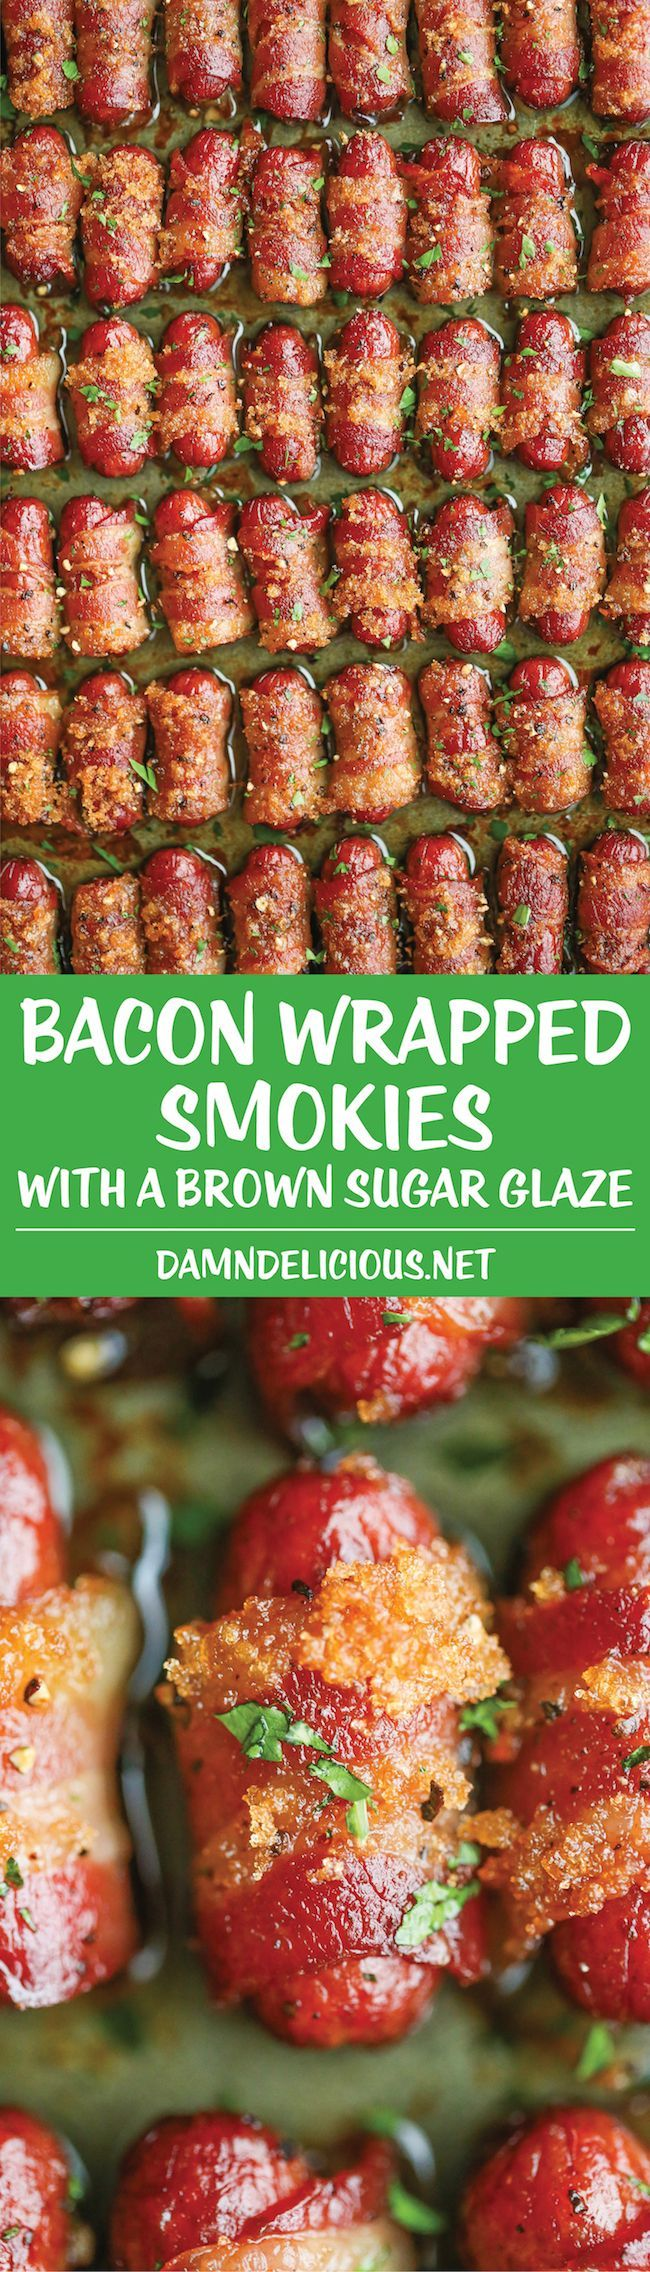 Smokies are already a huge hit on game day, make them even better by wrapping them in bacon and pouring on a brown sugar glaze.